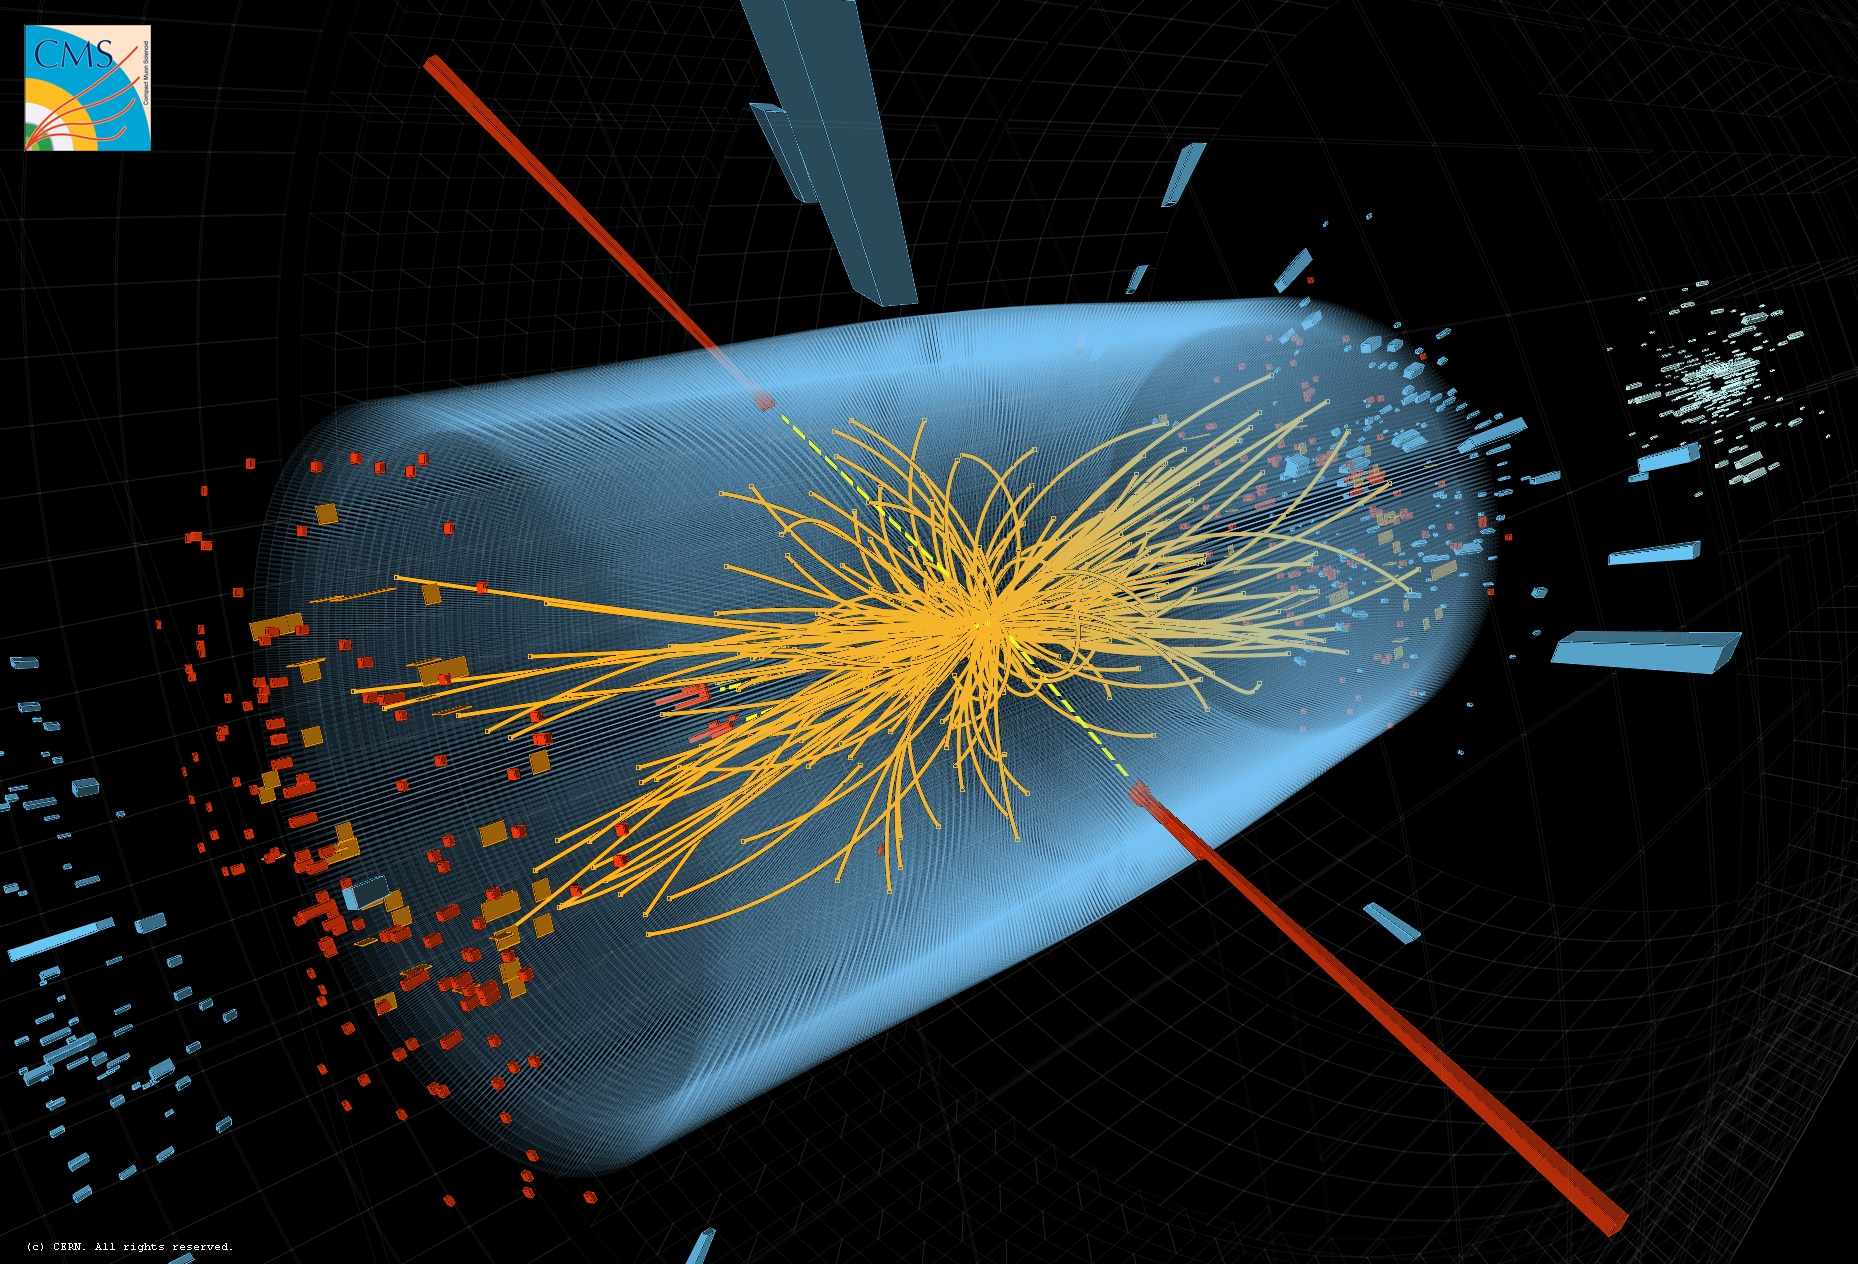 A proton-proton collision in the CMS detector, the red lines rods illustrate two detected photons produced in the high energy collision.  These could be the result of a Higgs boson being produced and decaying into two photons.